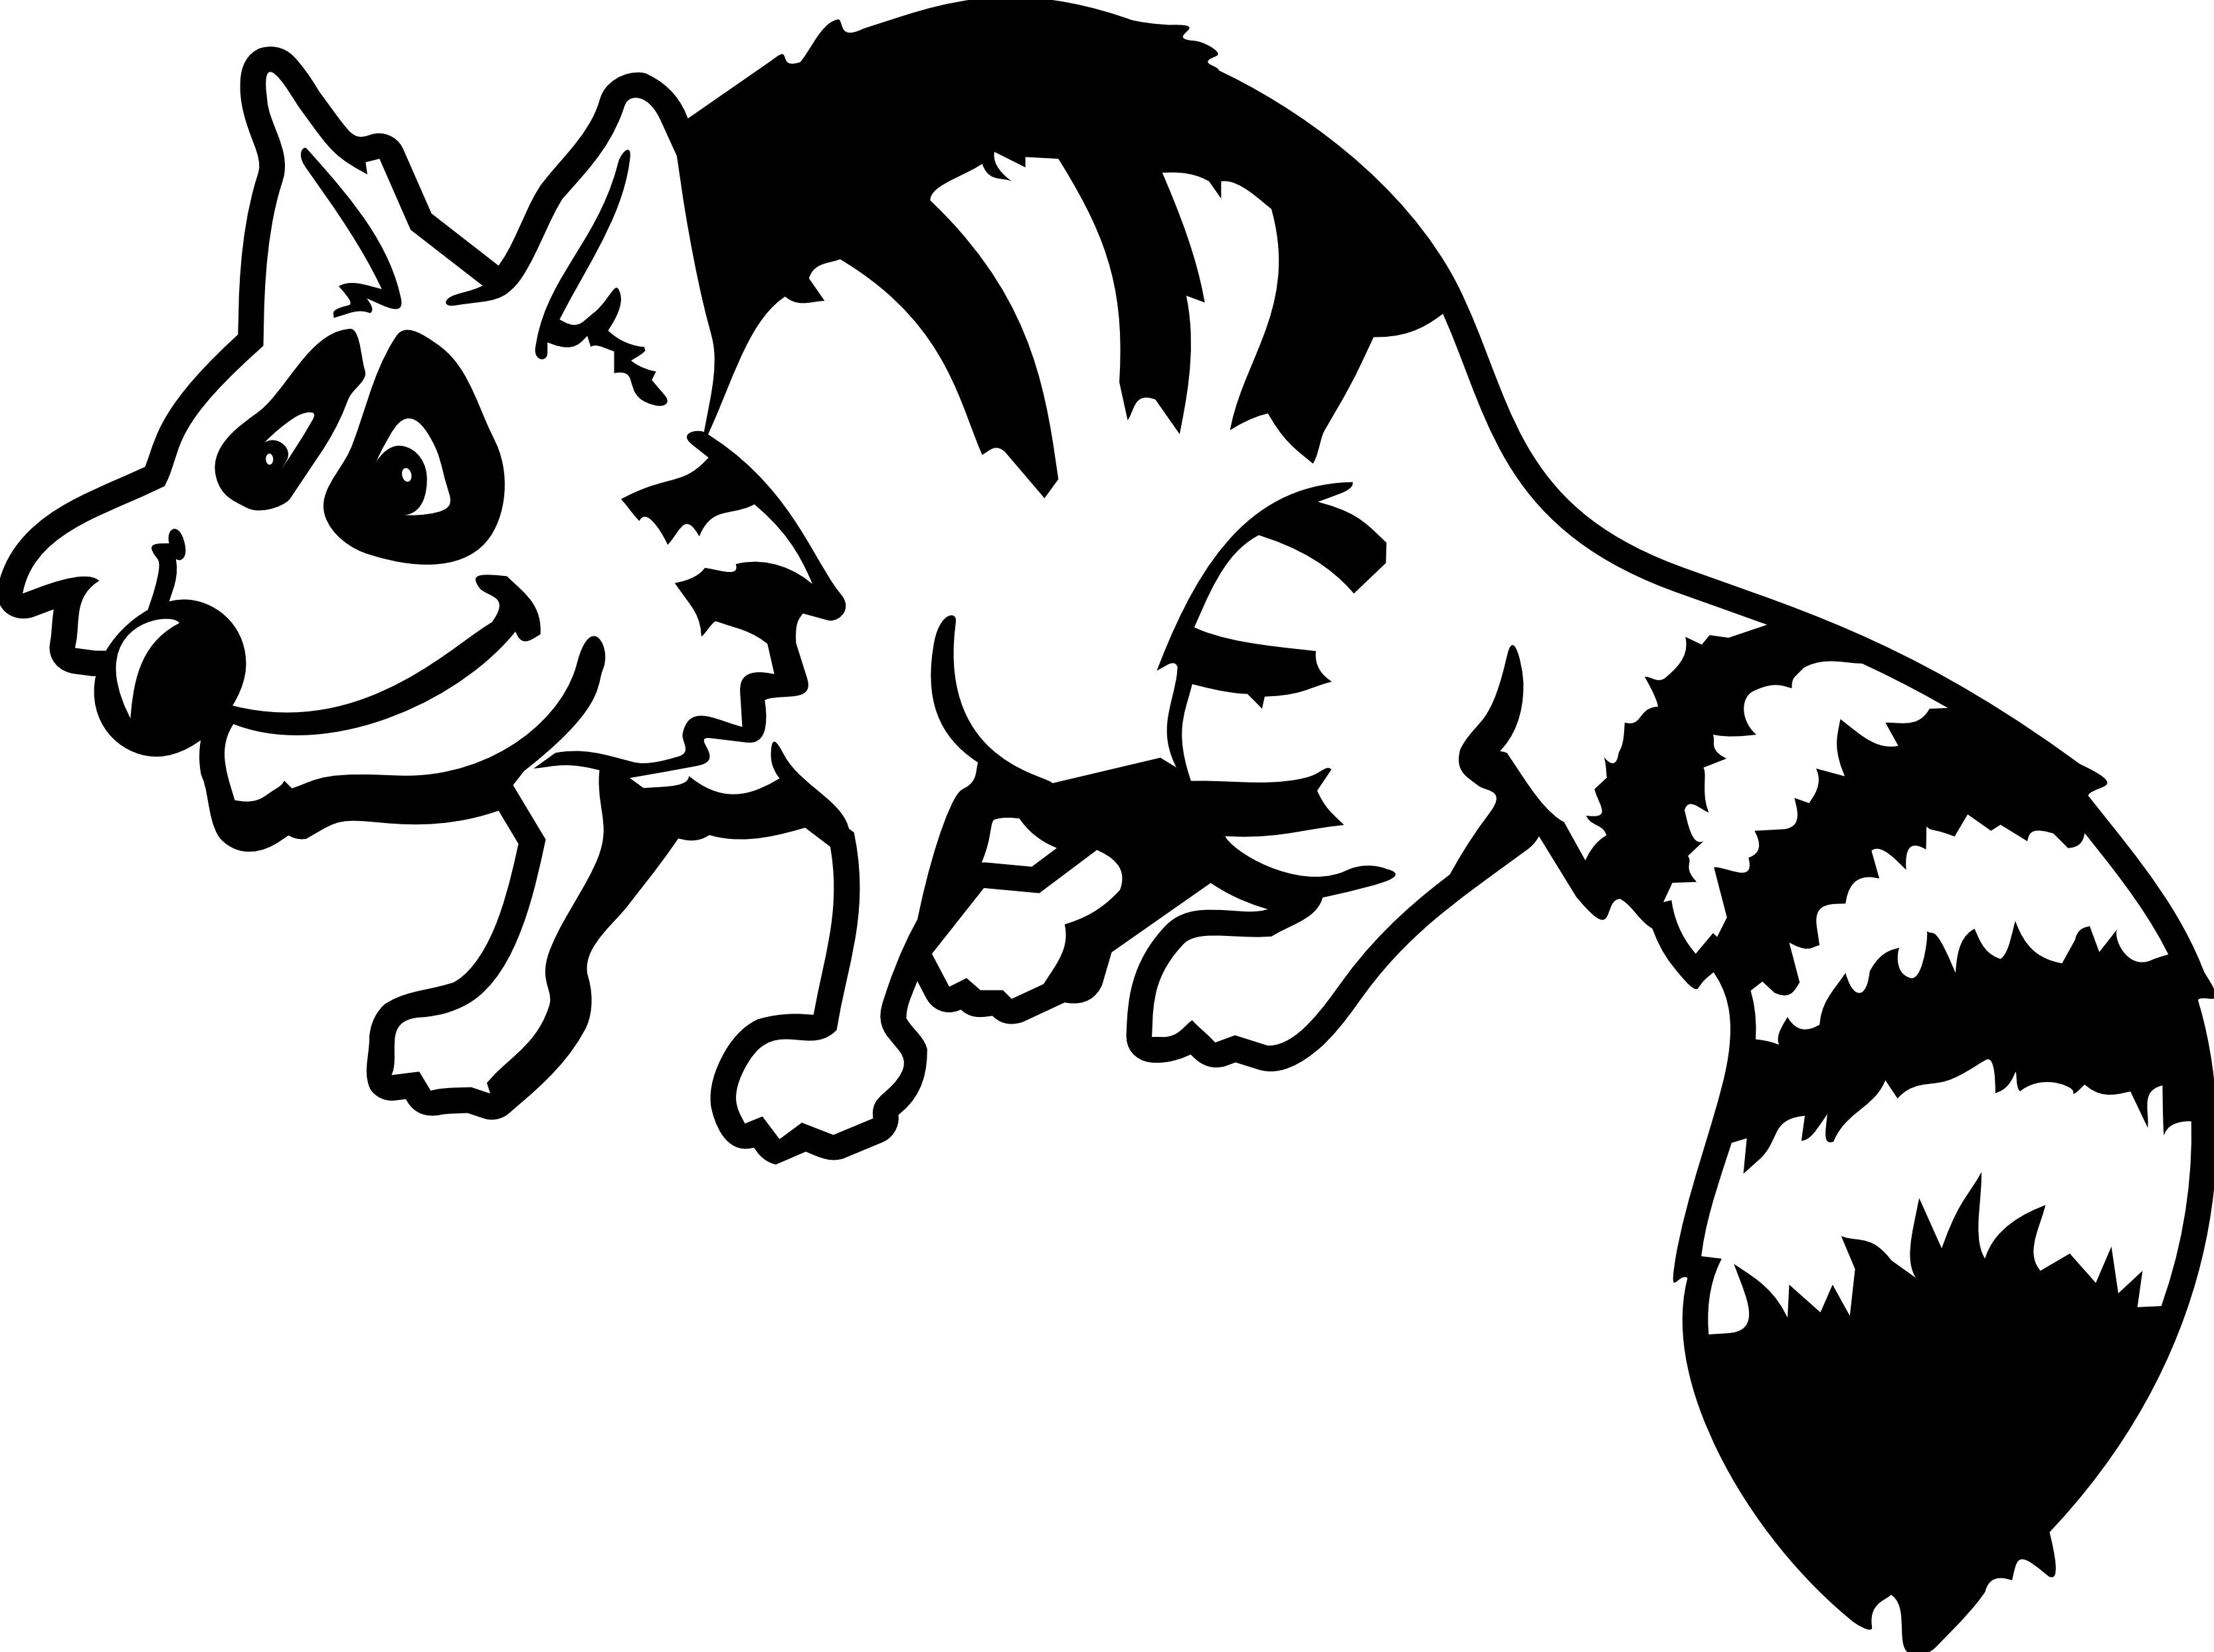 Drawn raccoon clipart Raccoon%20clipart%20black%20and%20white Panda Clipart White Images